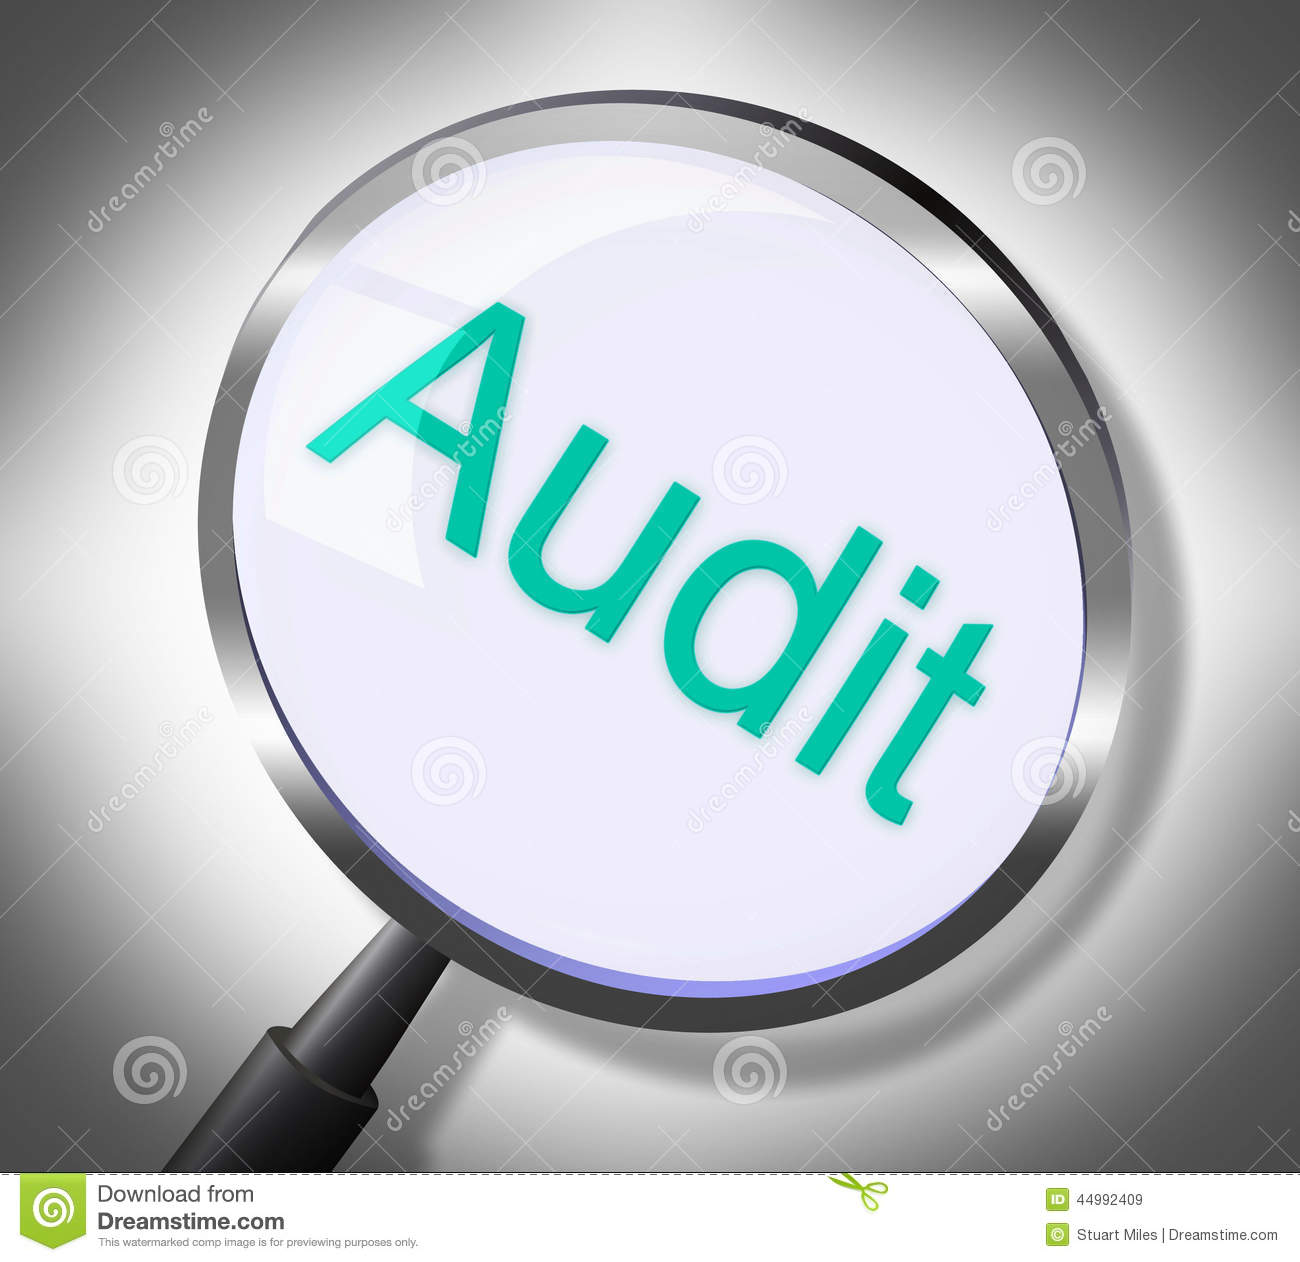 Auditing research